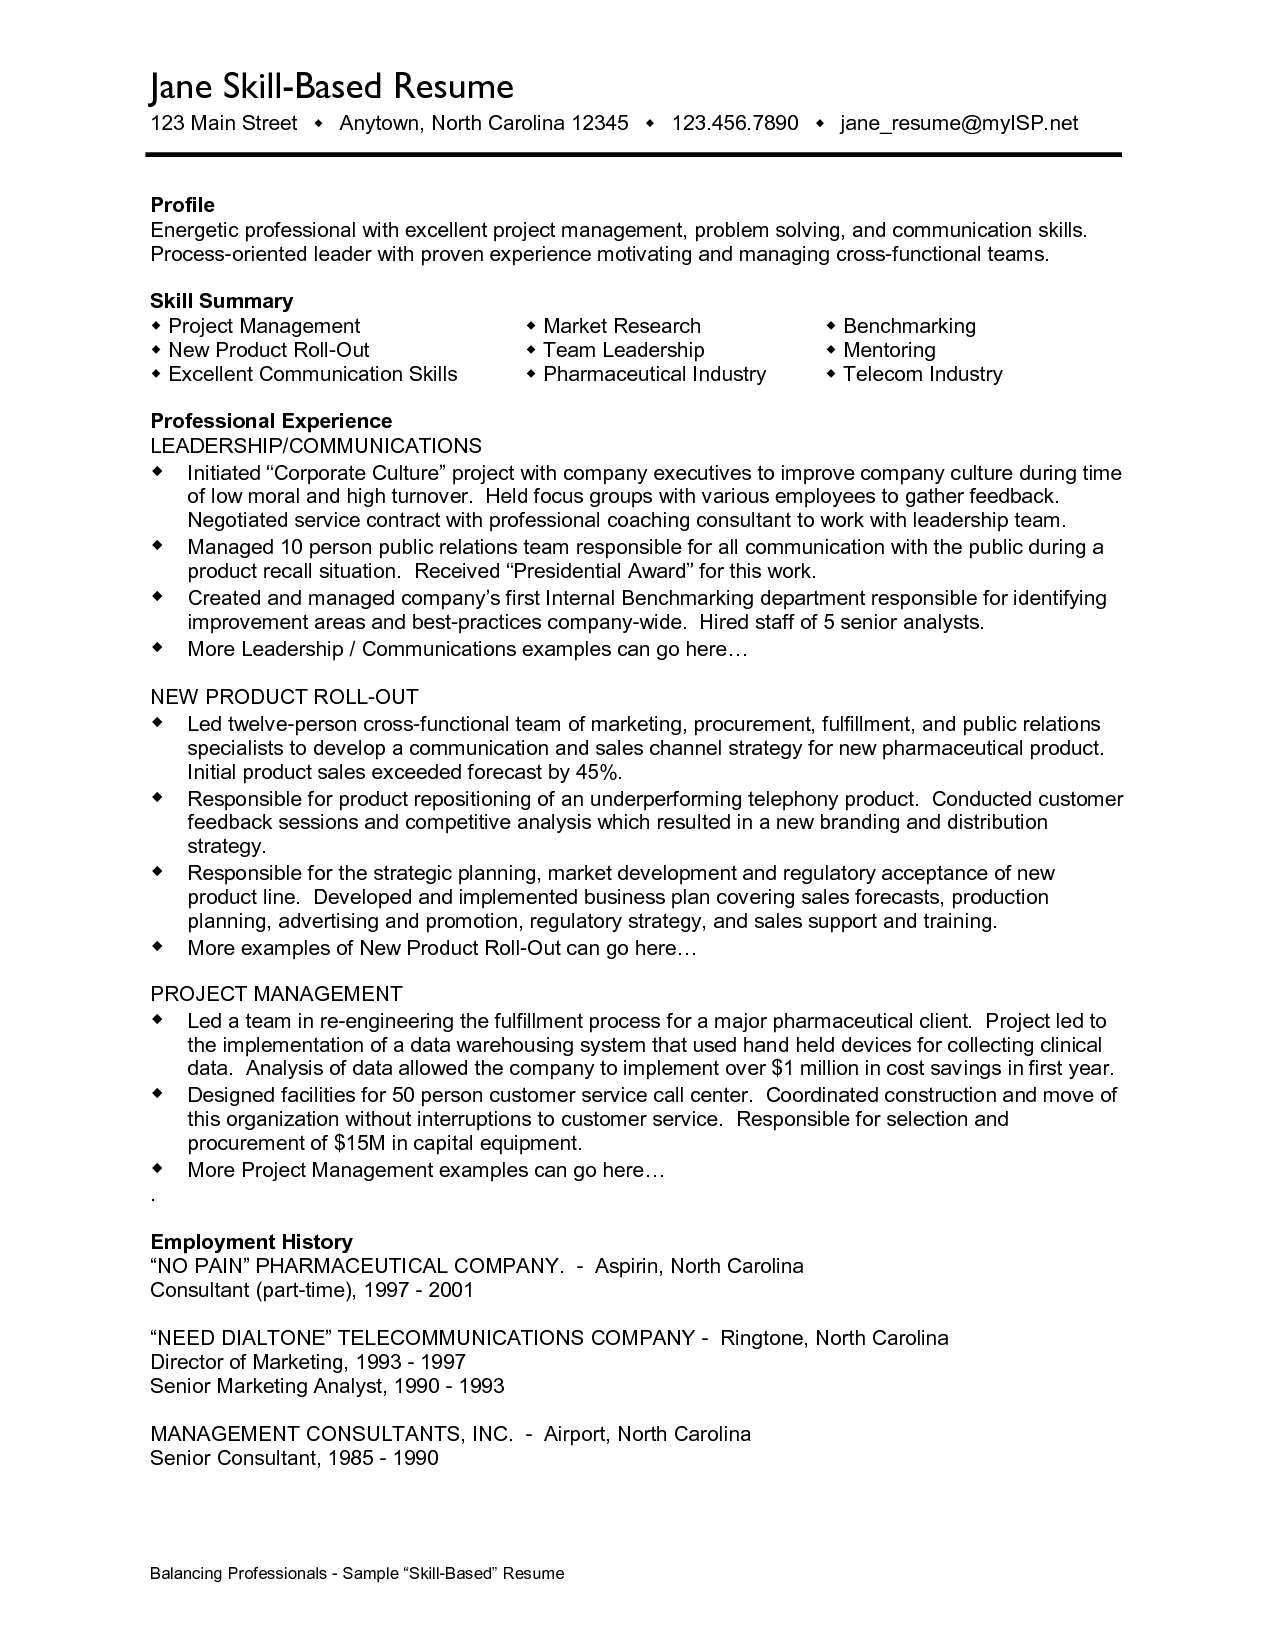 Skill Resume Template Job Resume Communication Skills  Httpwwwresumecareerjob